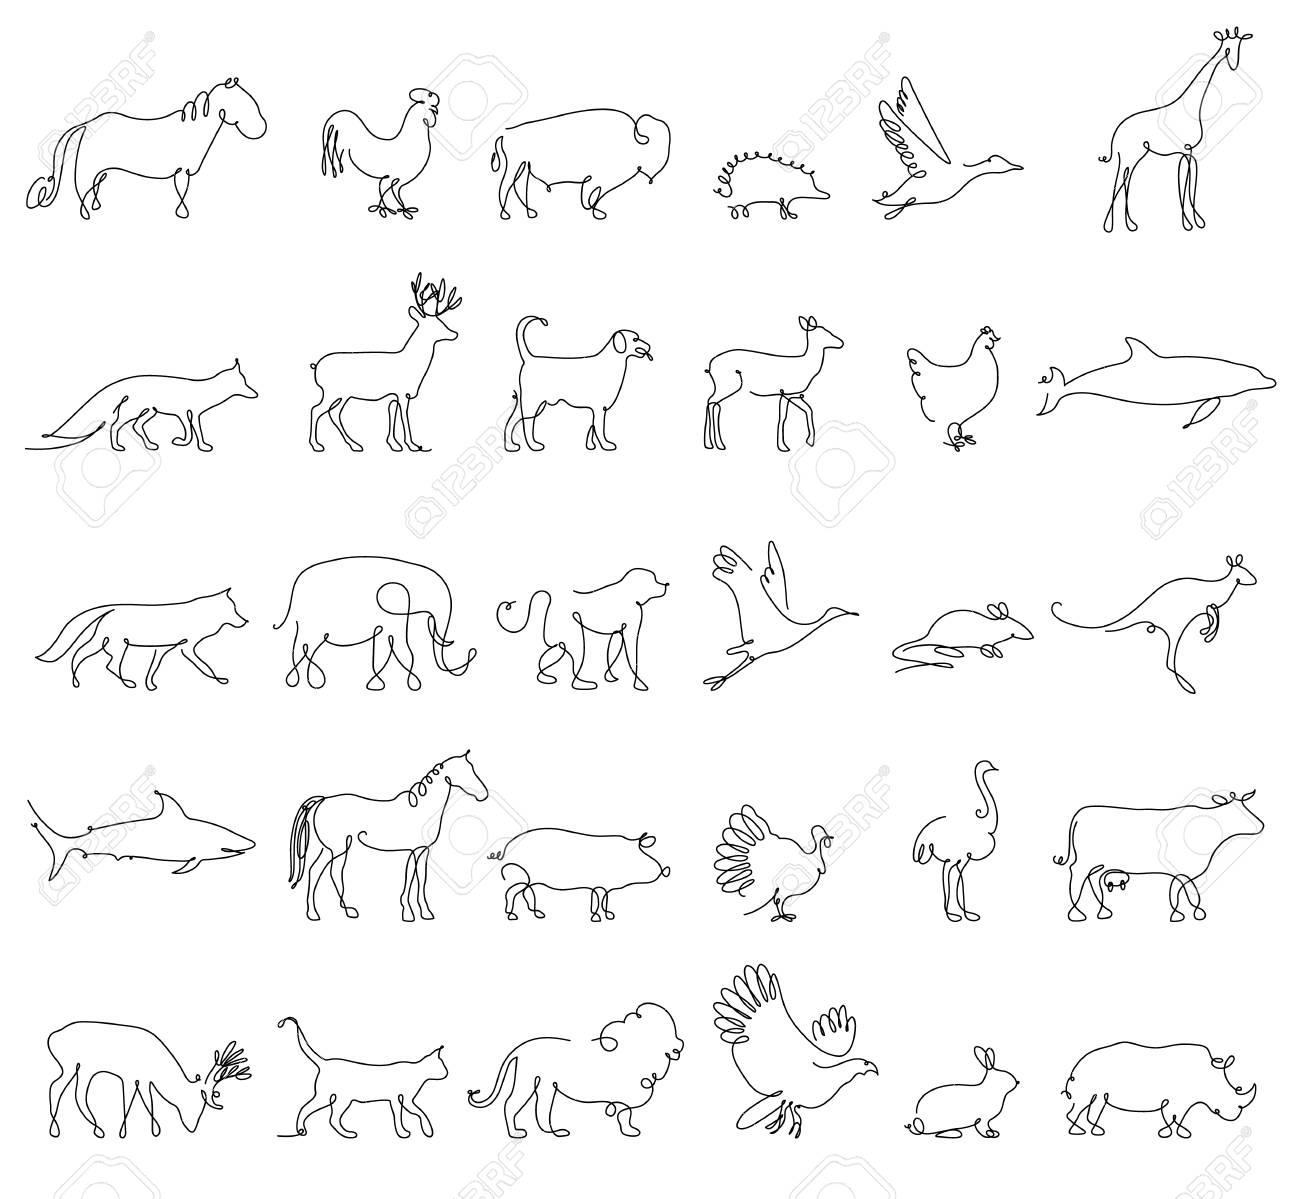 One line animals set logos vector stock illustration turkey and cow pig and eagle giraffe and horse dog and cat fox and wolf dolphin and shark